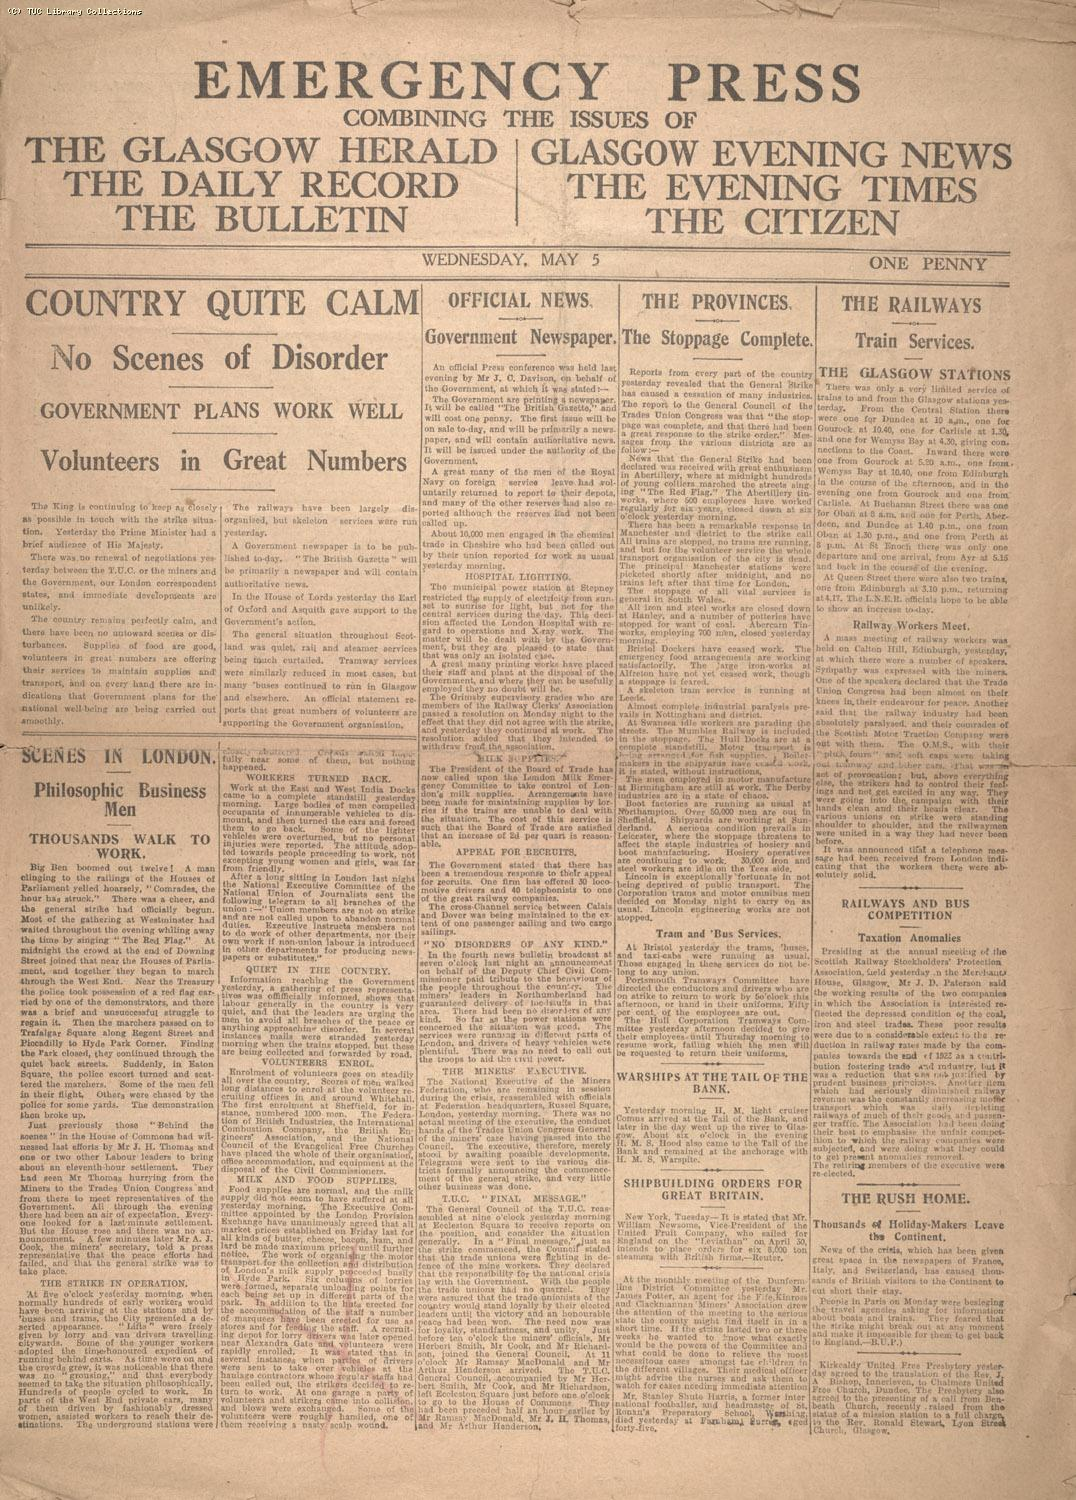 Emergency Press, 5 May 1926